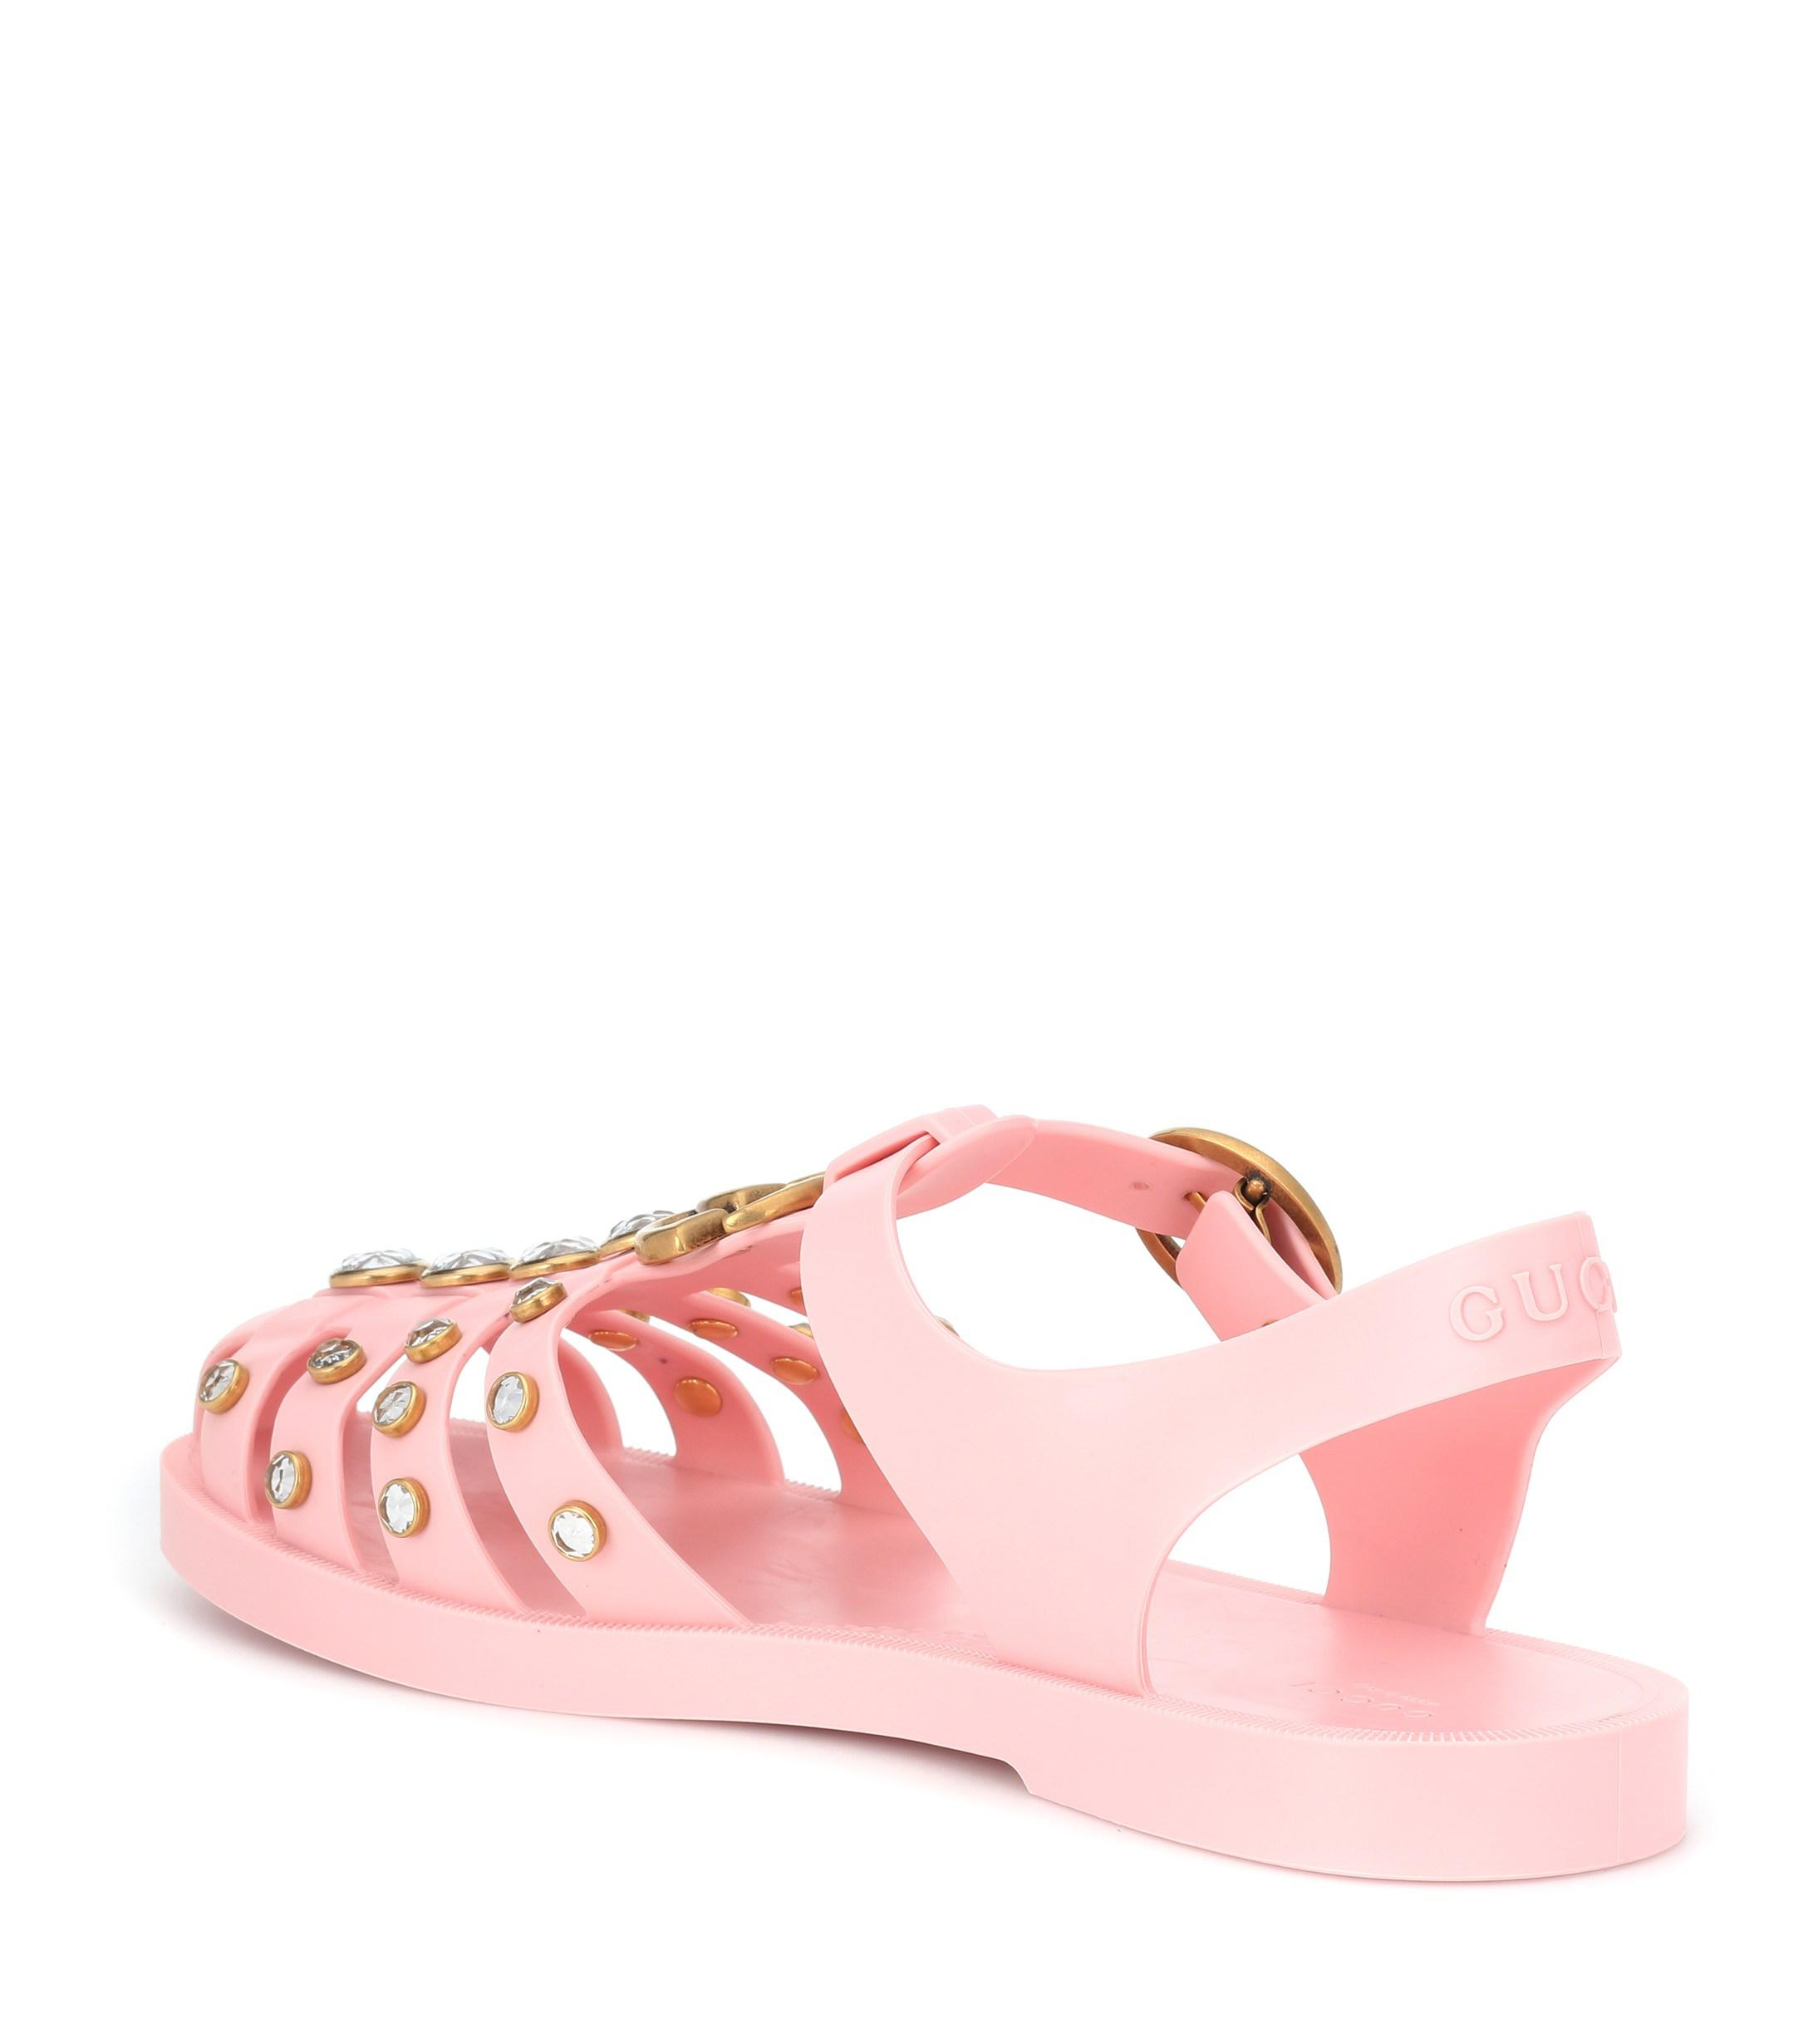 gucci jelly sandals pink